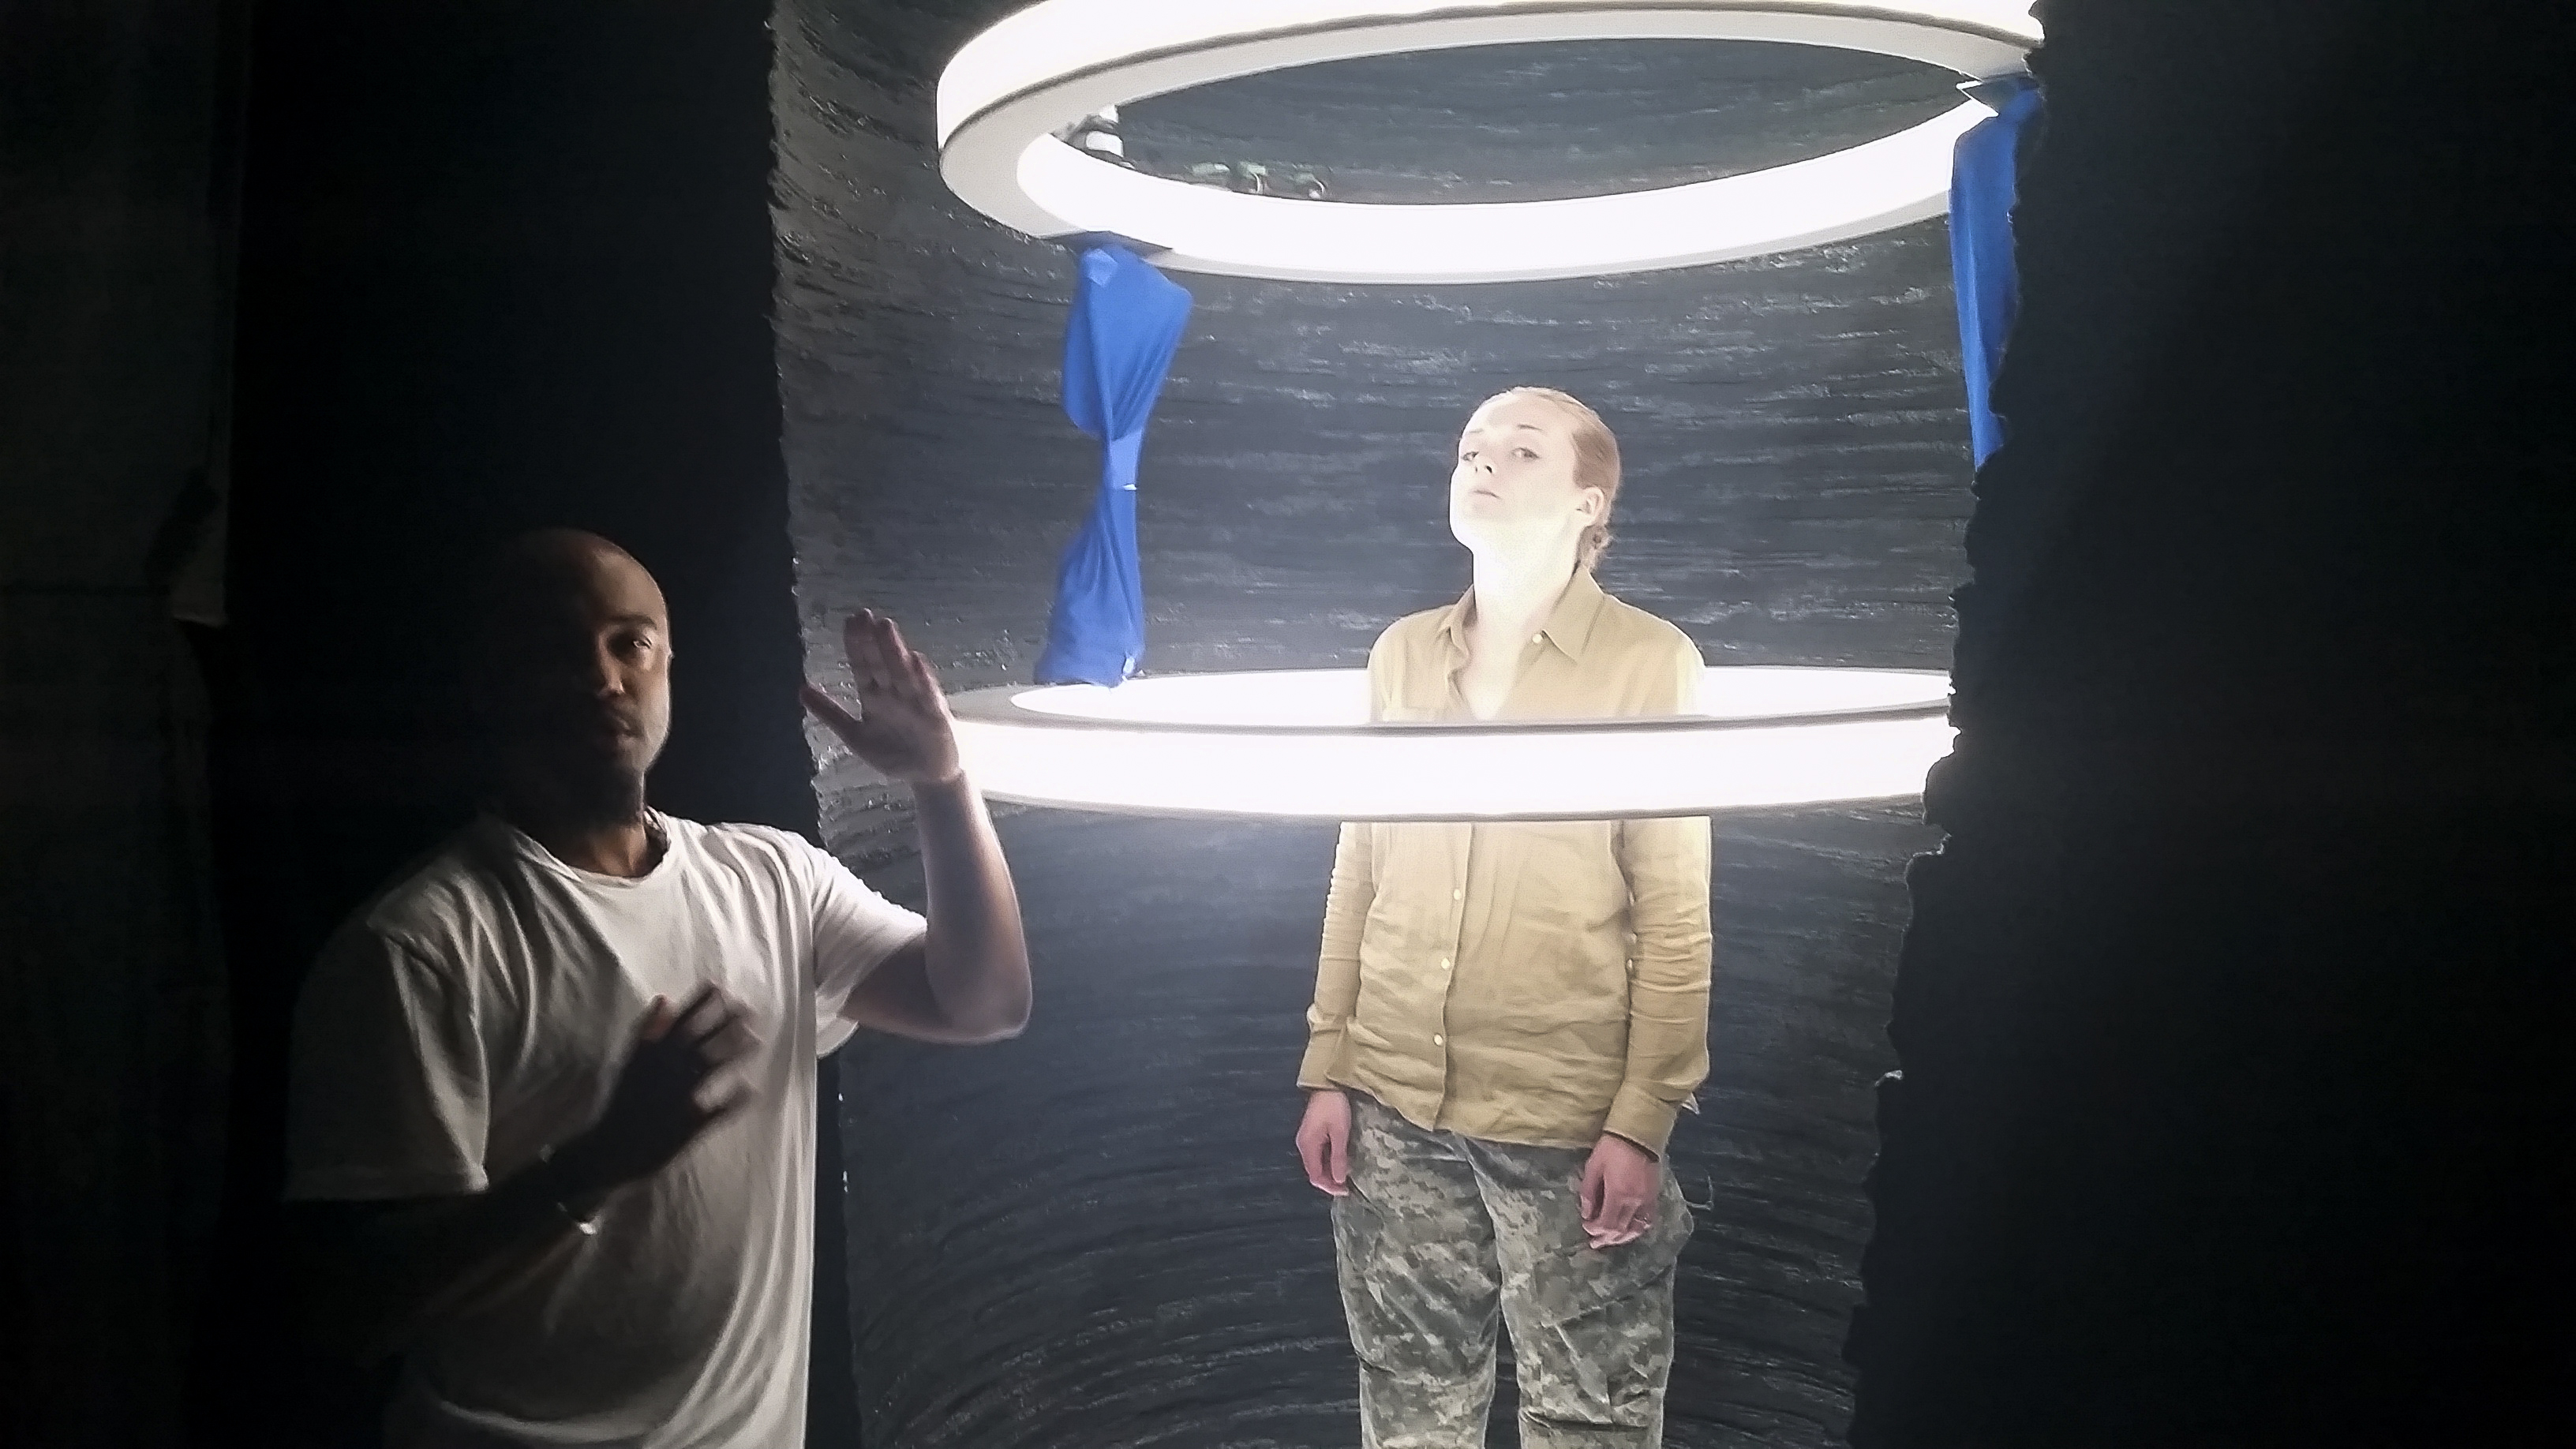 Bradford Young, ASC studies the light in the set for the aliens' spacecraft.